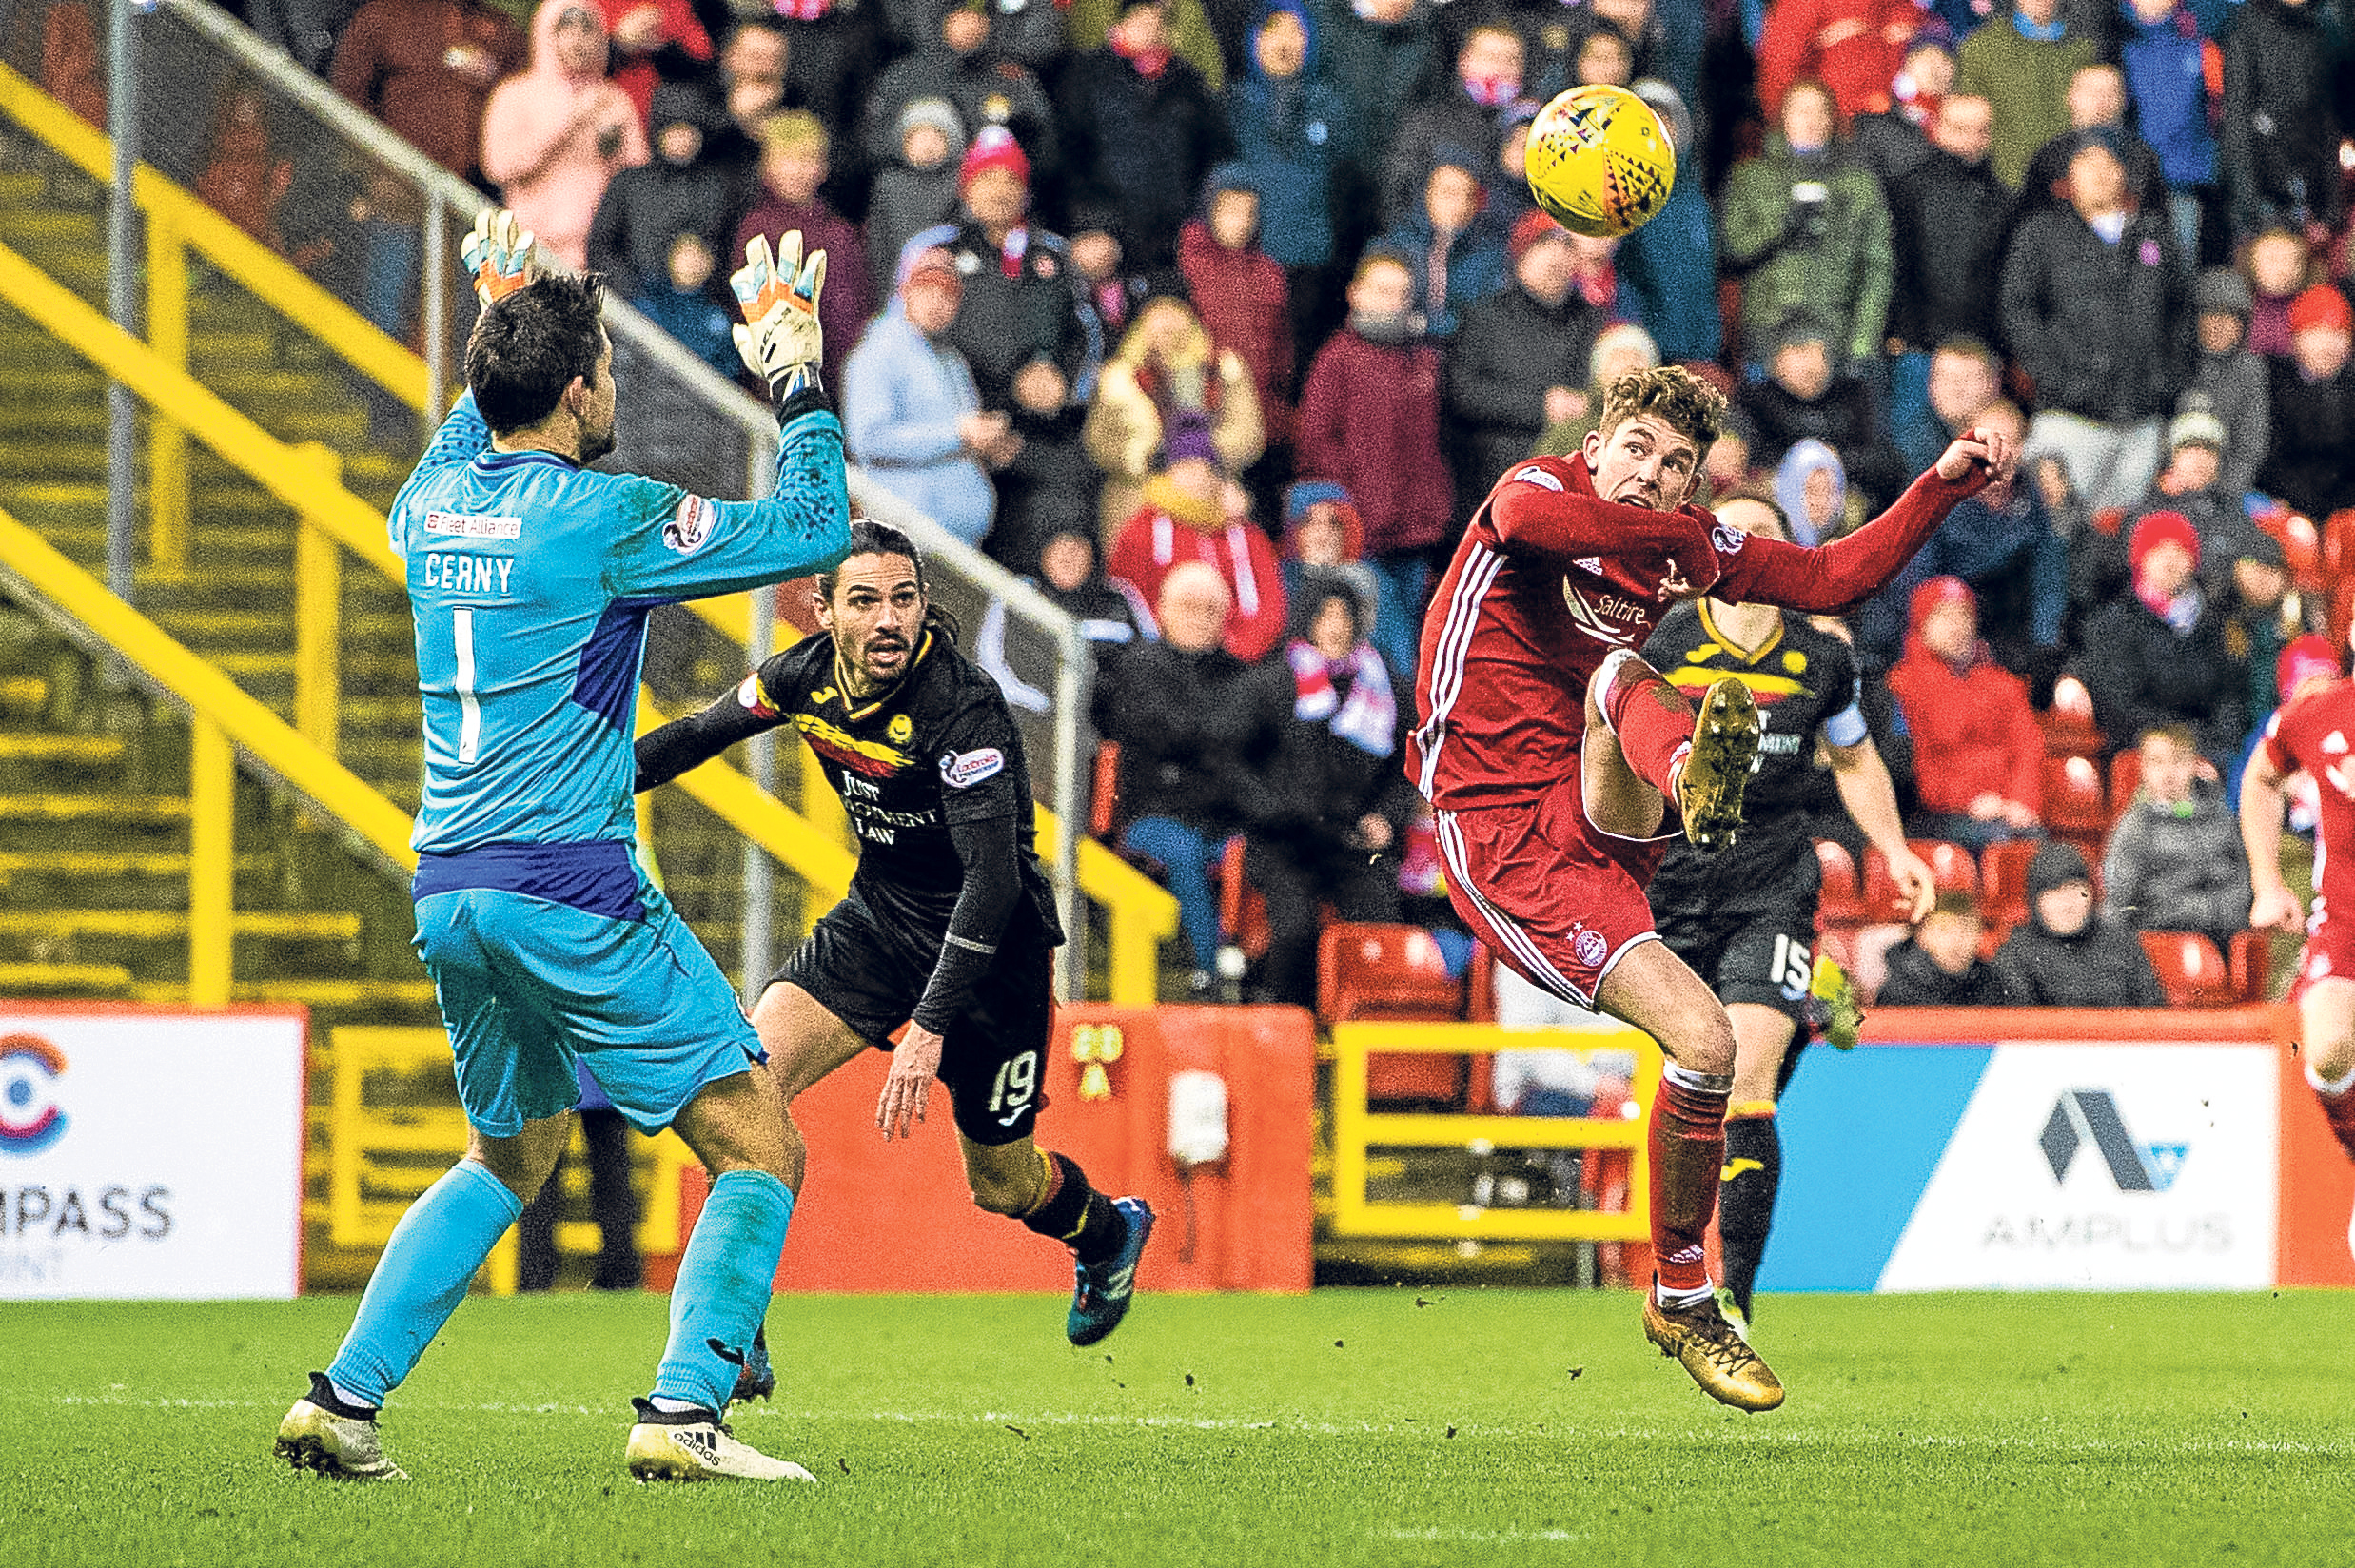 Aberdeen's Ryan Christie looked most likely to make the difference against Hearts.